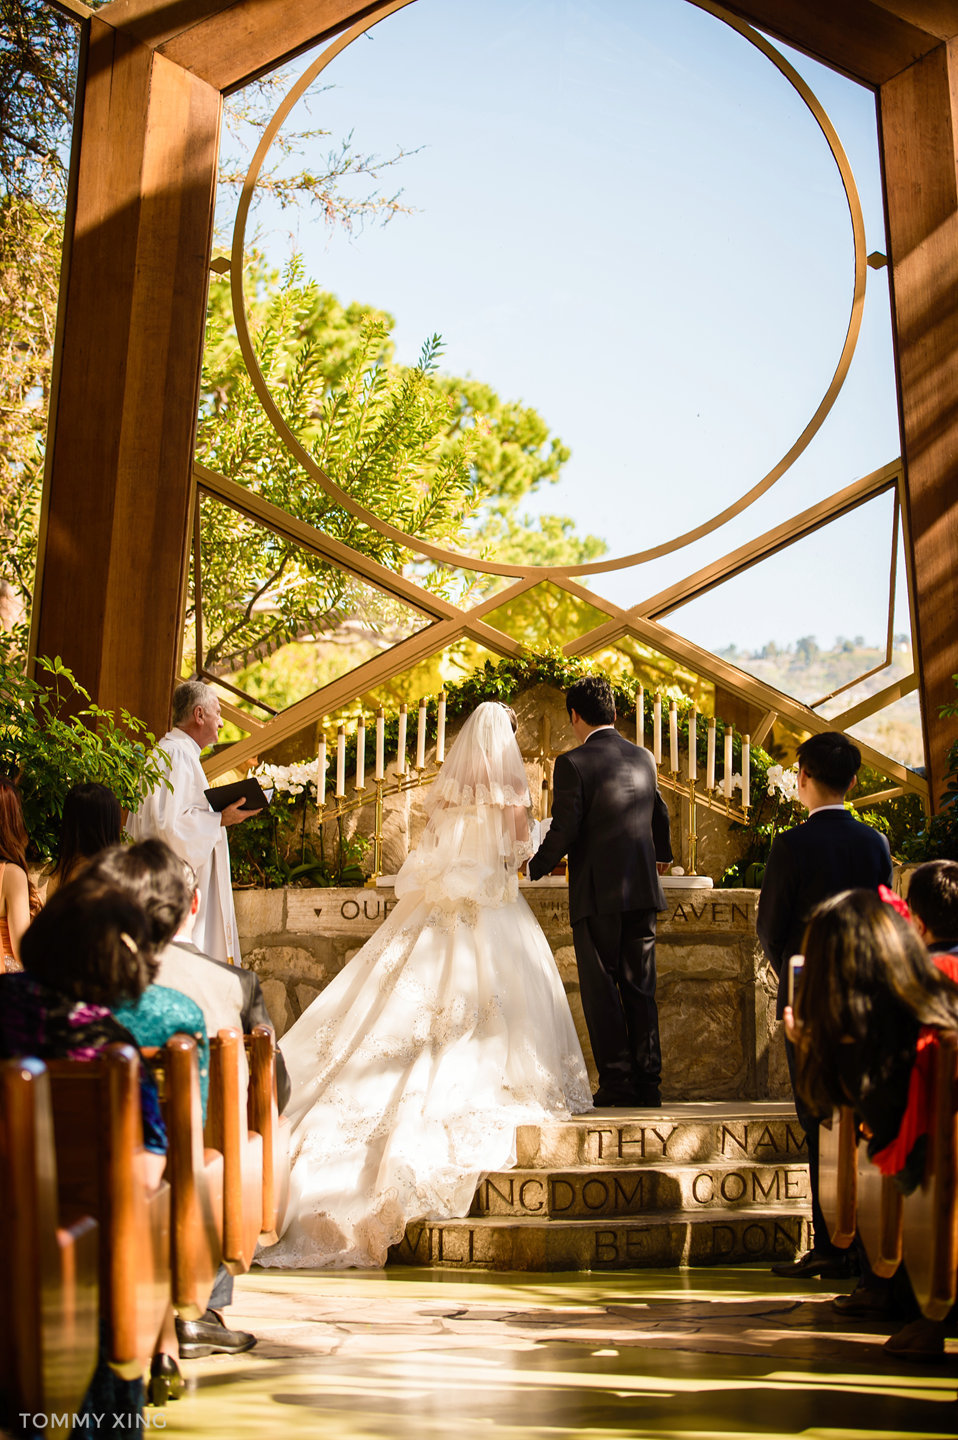 Los Angeles Chinese Wedding Photographer WAYFARERS CHAPEL Tommy Xing 洛杉矶婚礼婚纱摄影 075.jpg